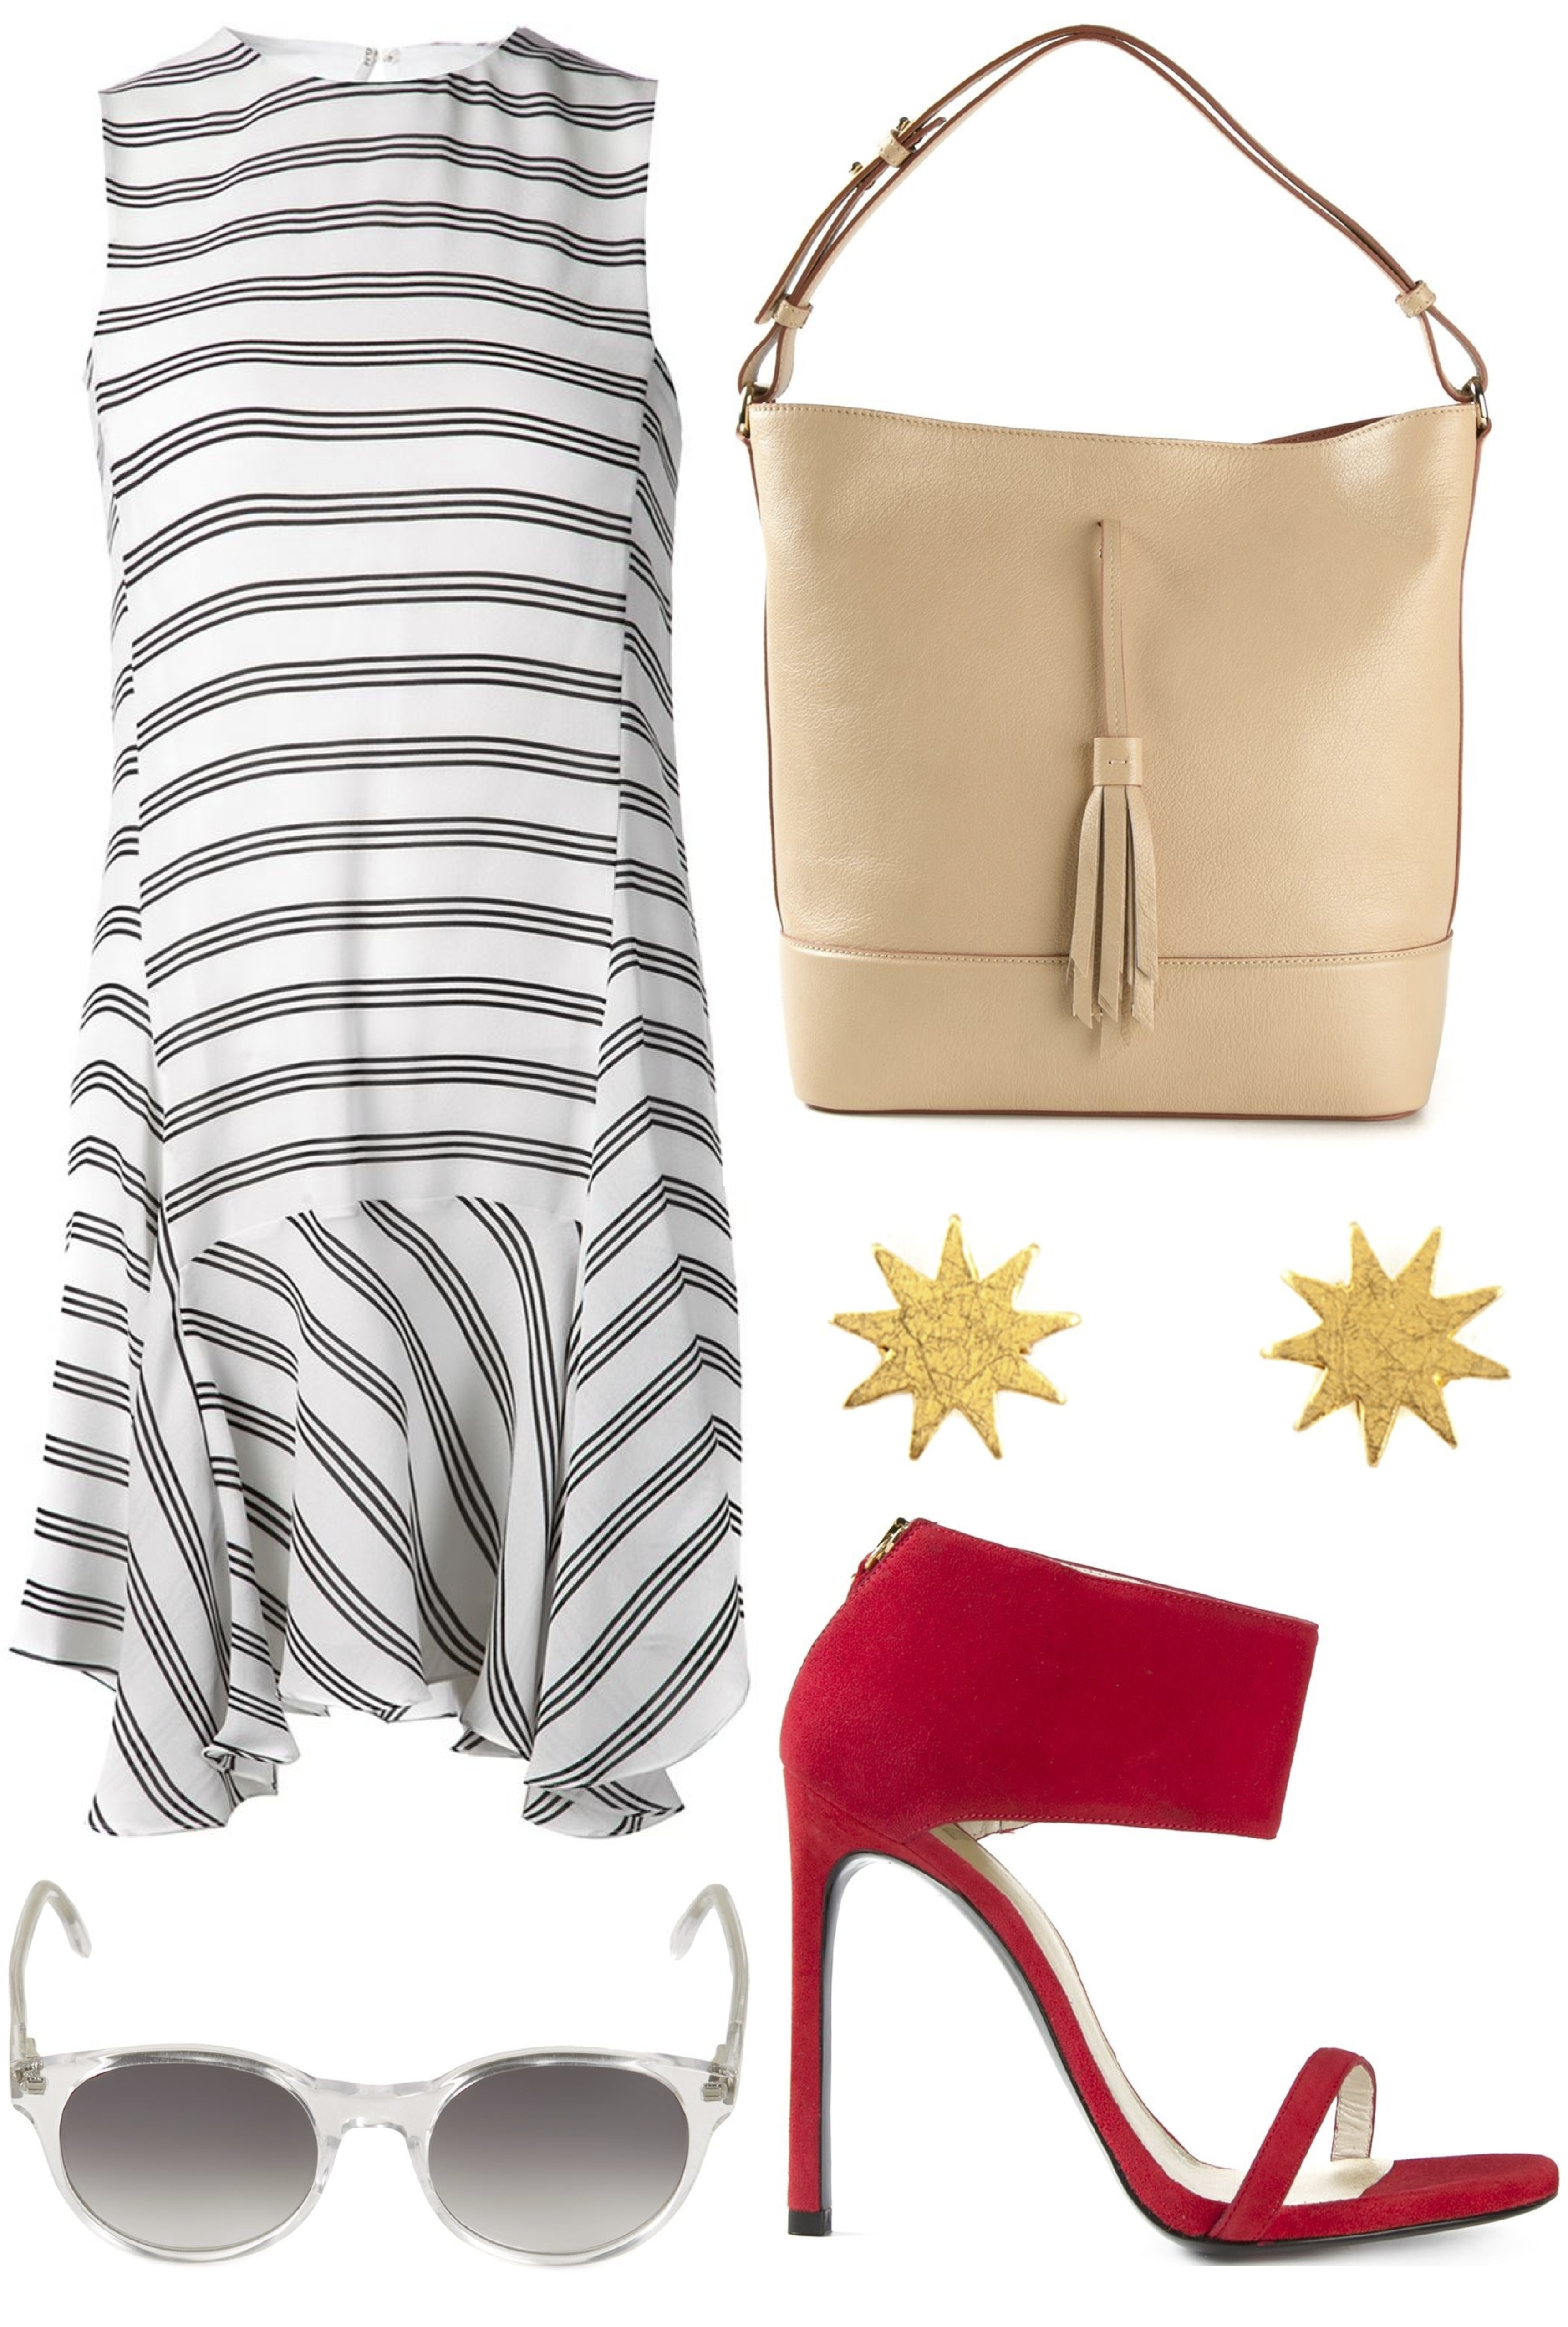 4th of july outfit ideas with striped dress